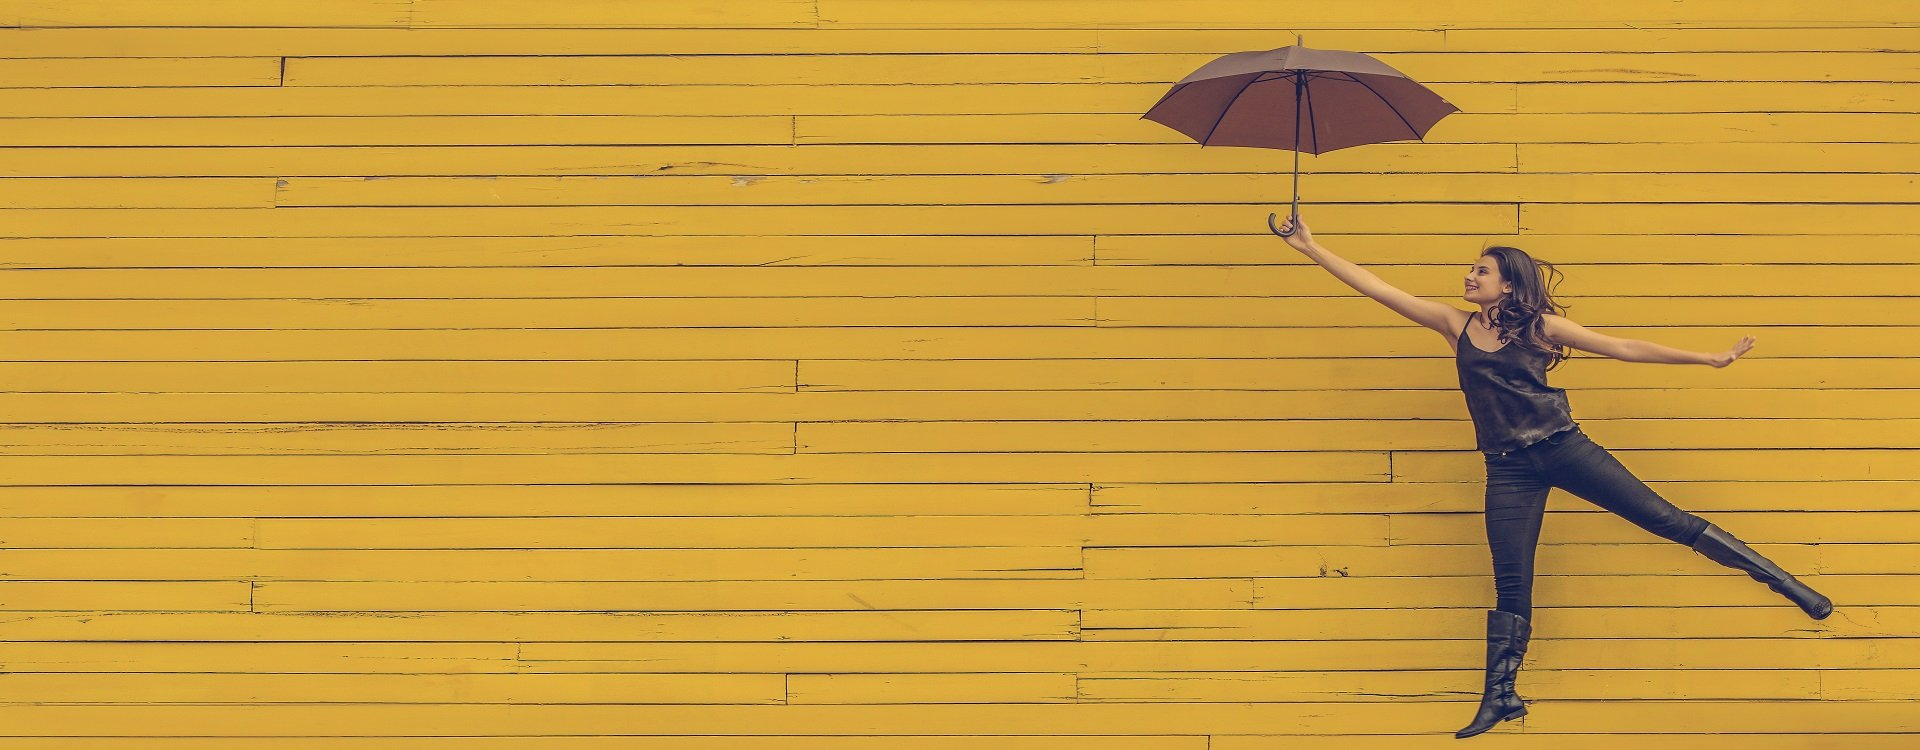 female holding an umbrella against a yellow wall 1920 x 750